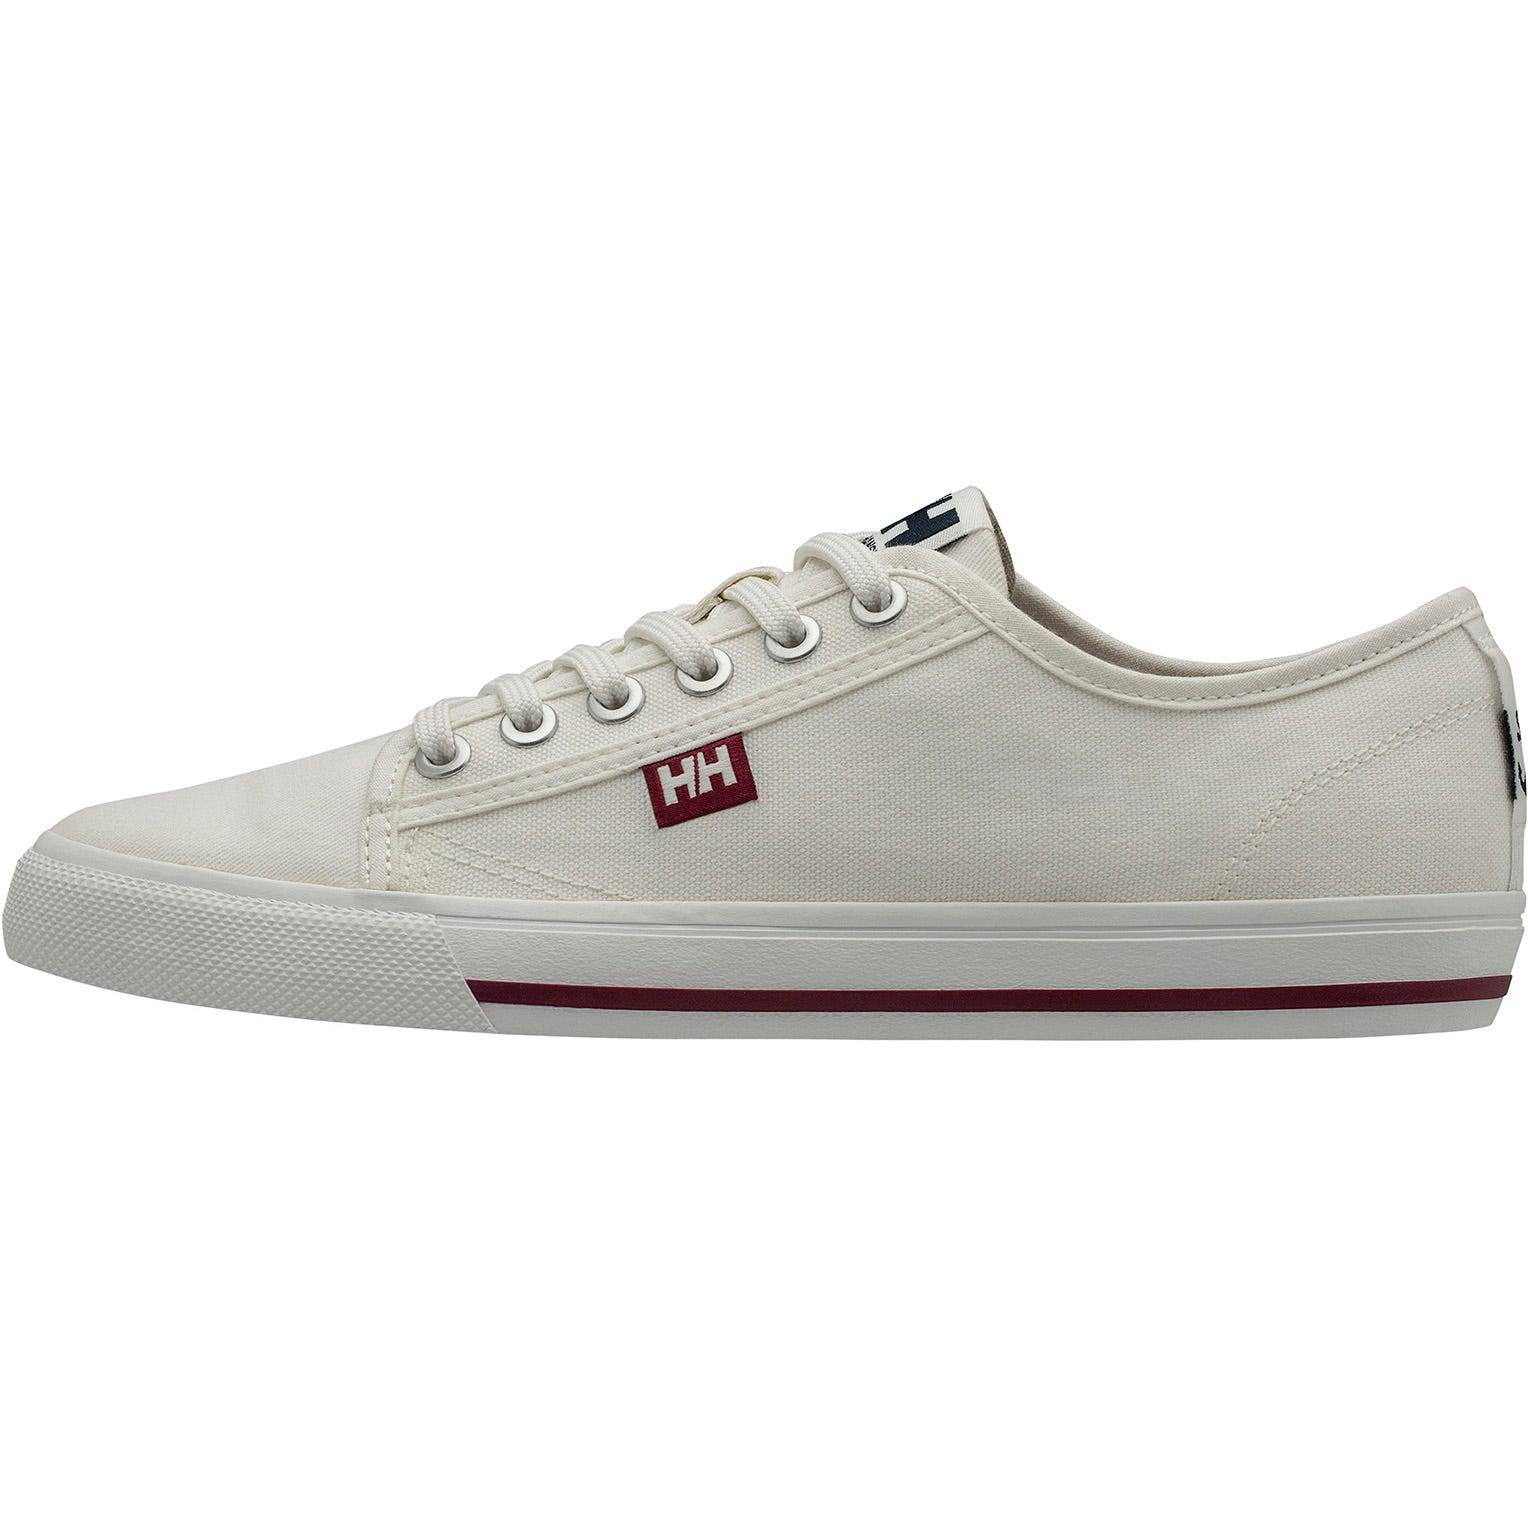 Helly Hansen W Fjord Canvas Shoe V2 Womens Casual White 37/6